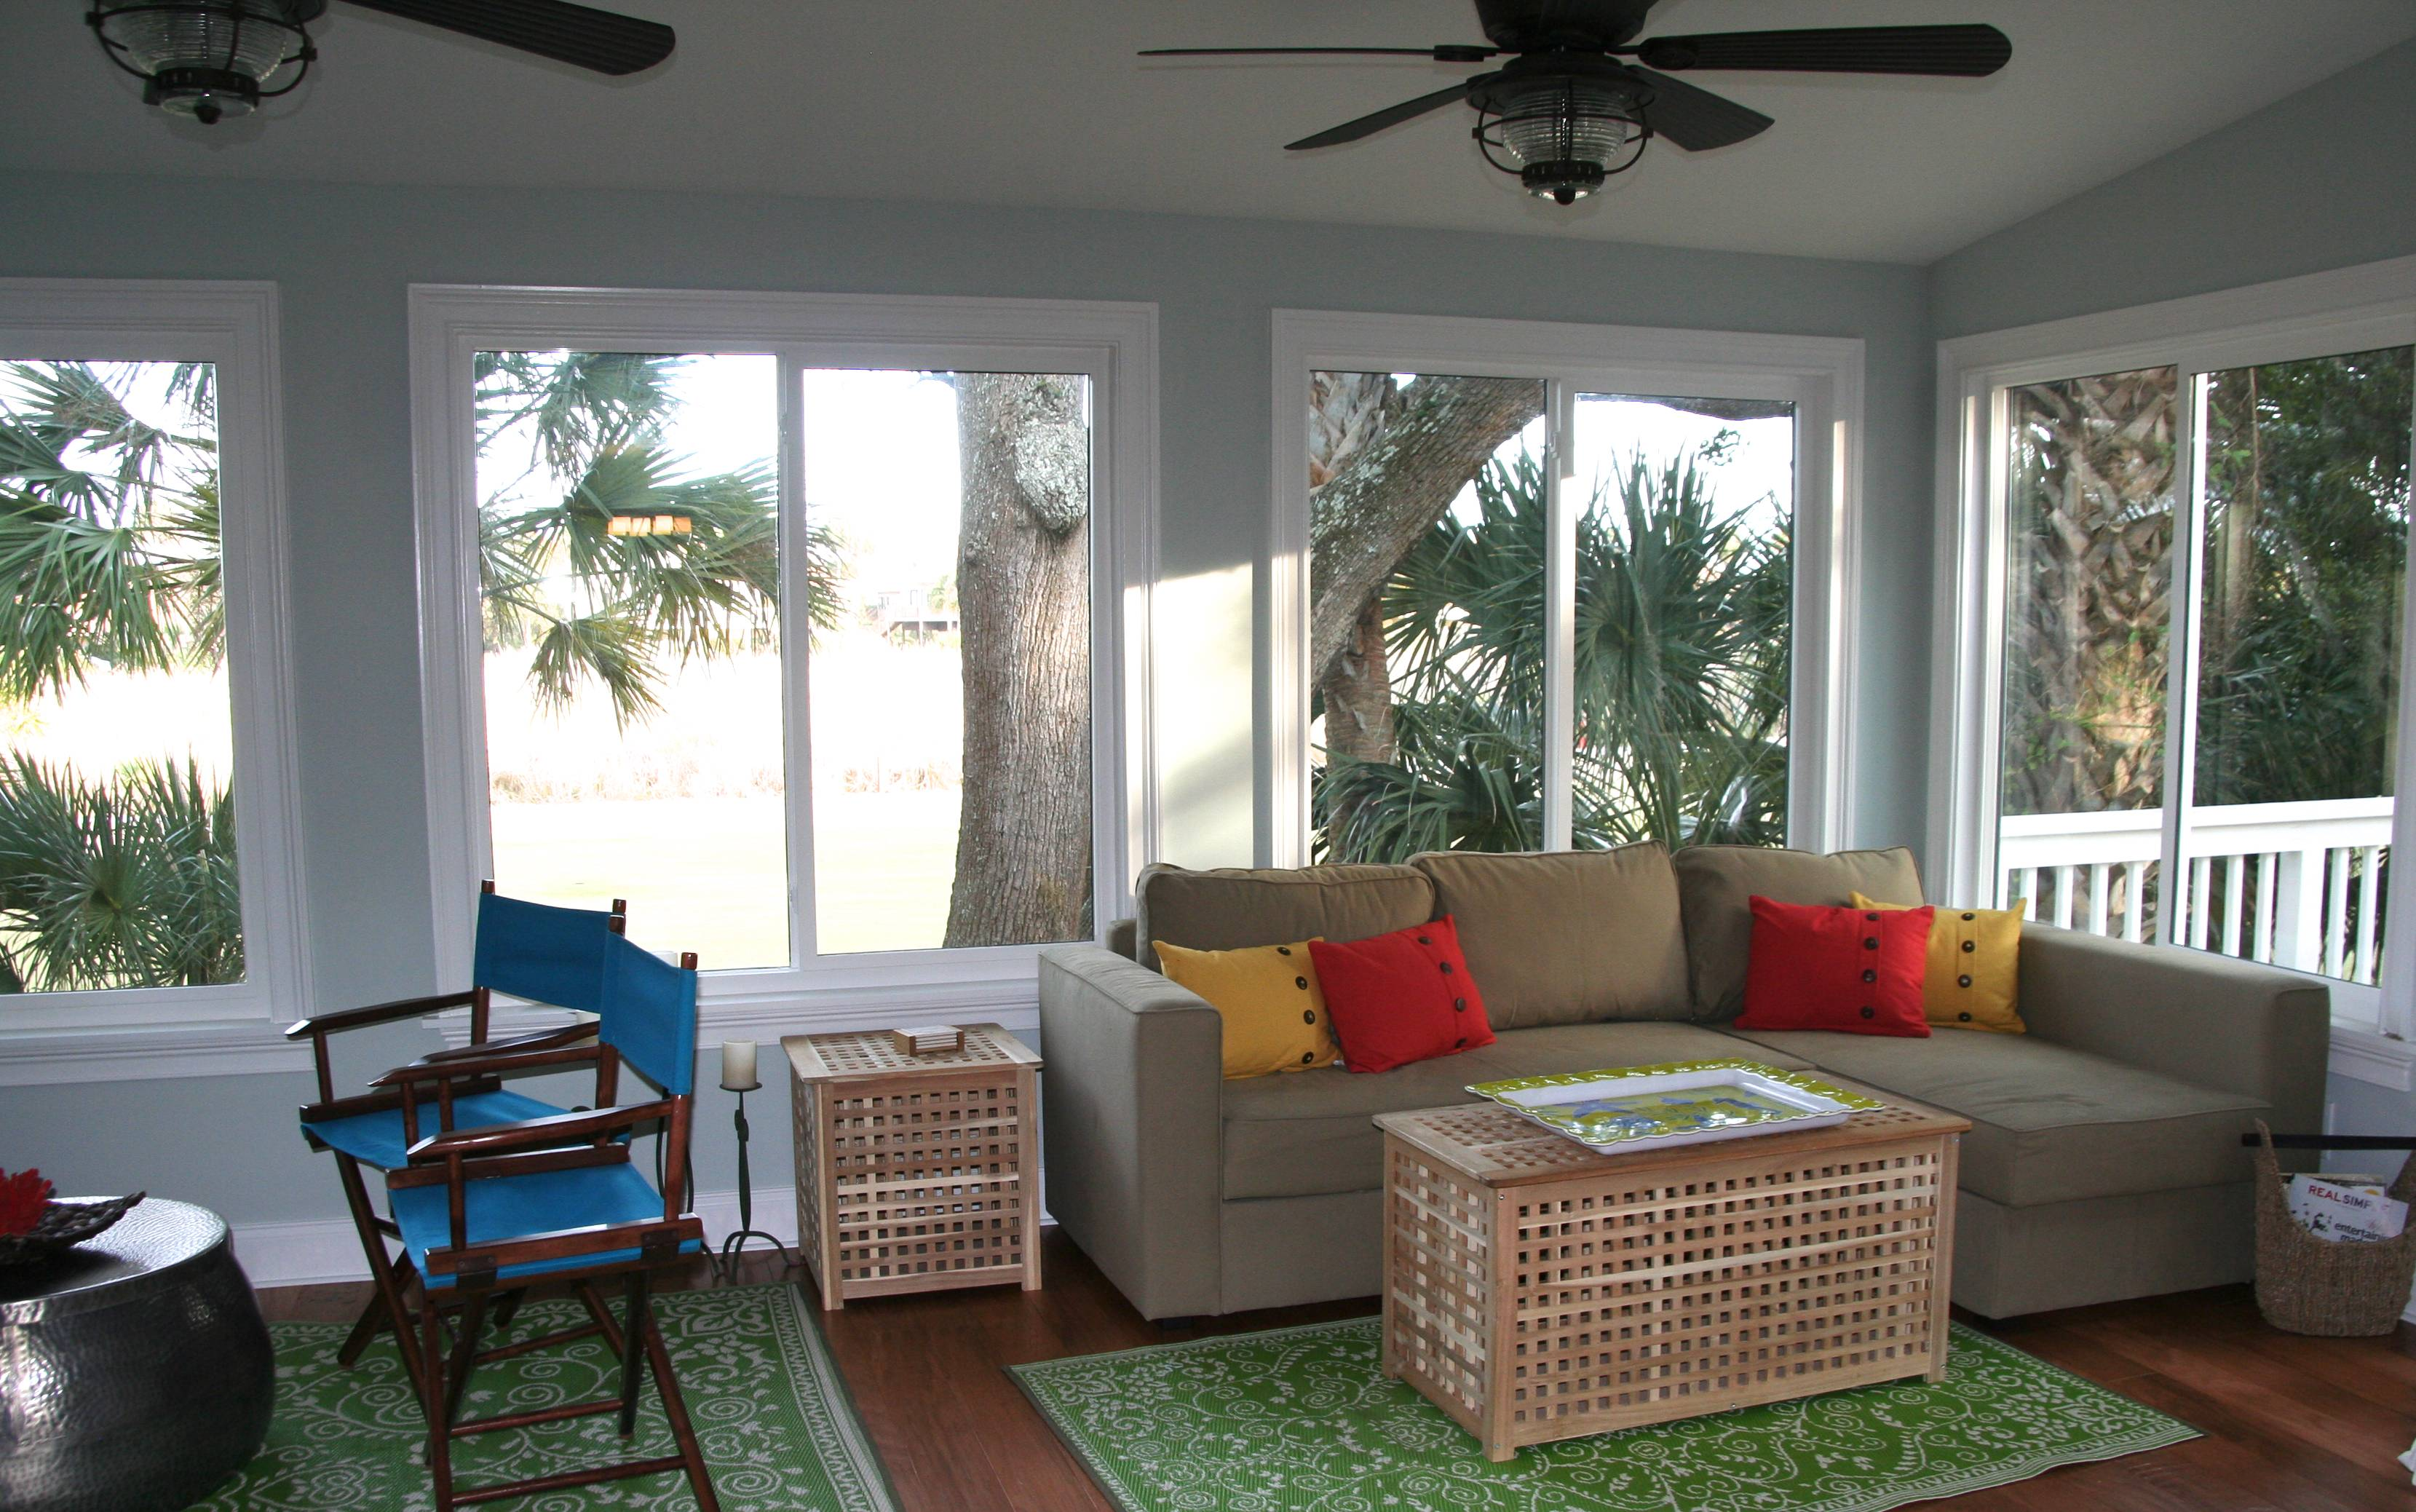 The living area was extended with this creation of an all season room.